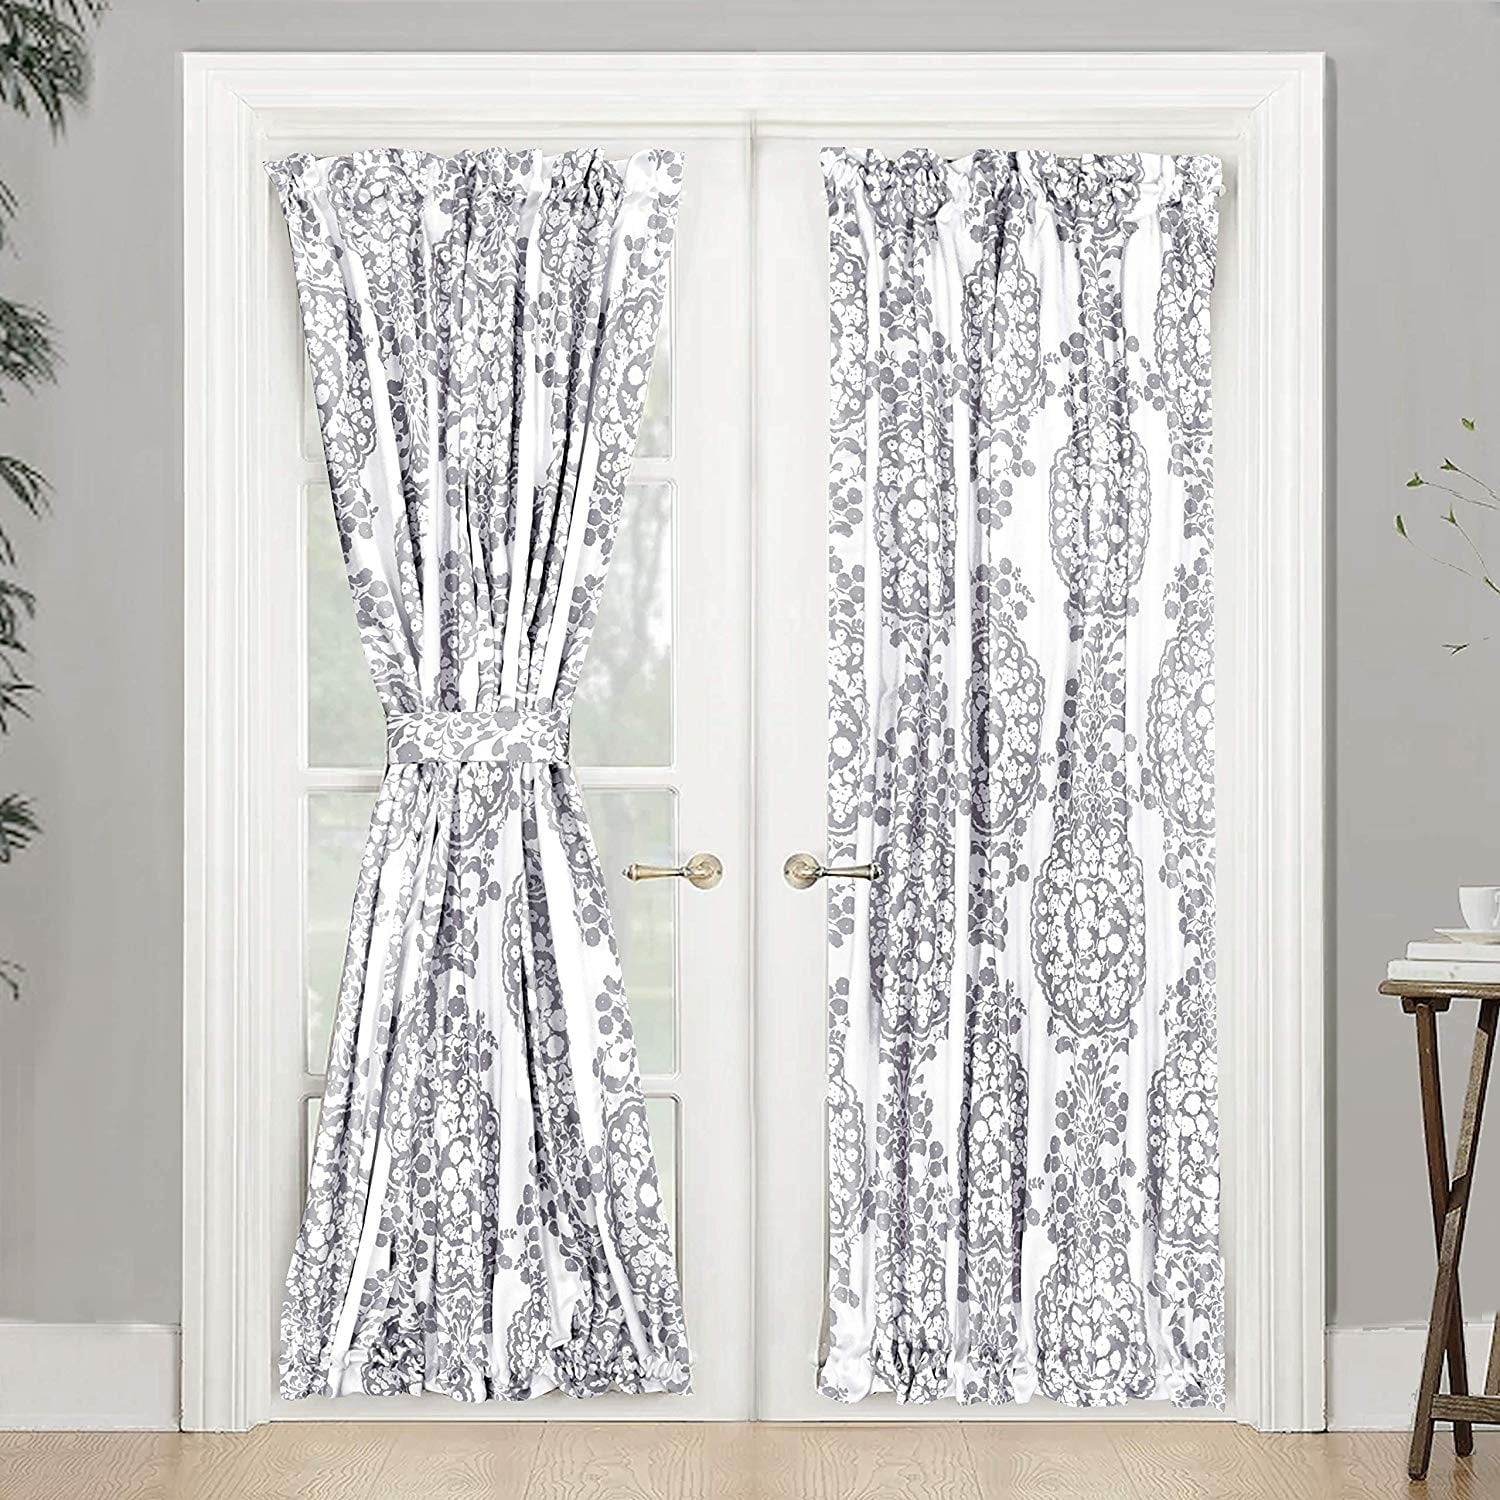 The Curated Nomad Alameda Room Darkening French Door Single Curtain Panel Overstock 25449058